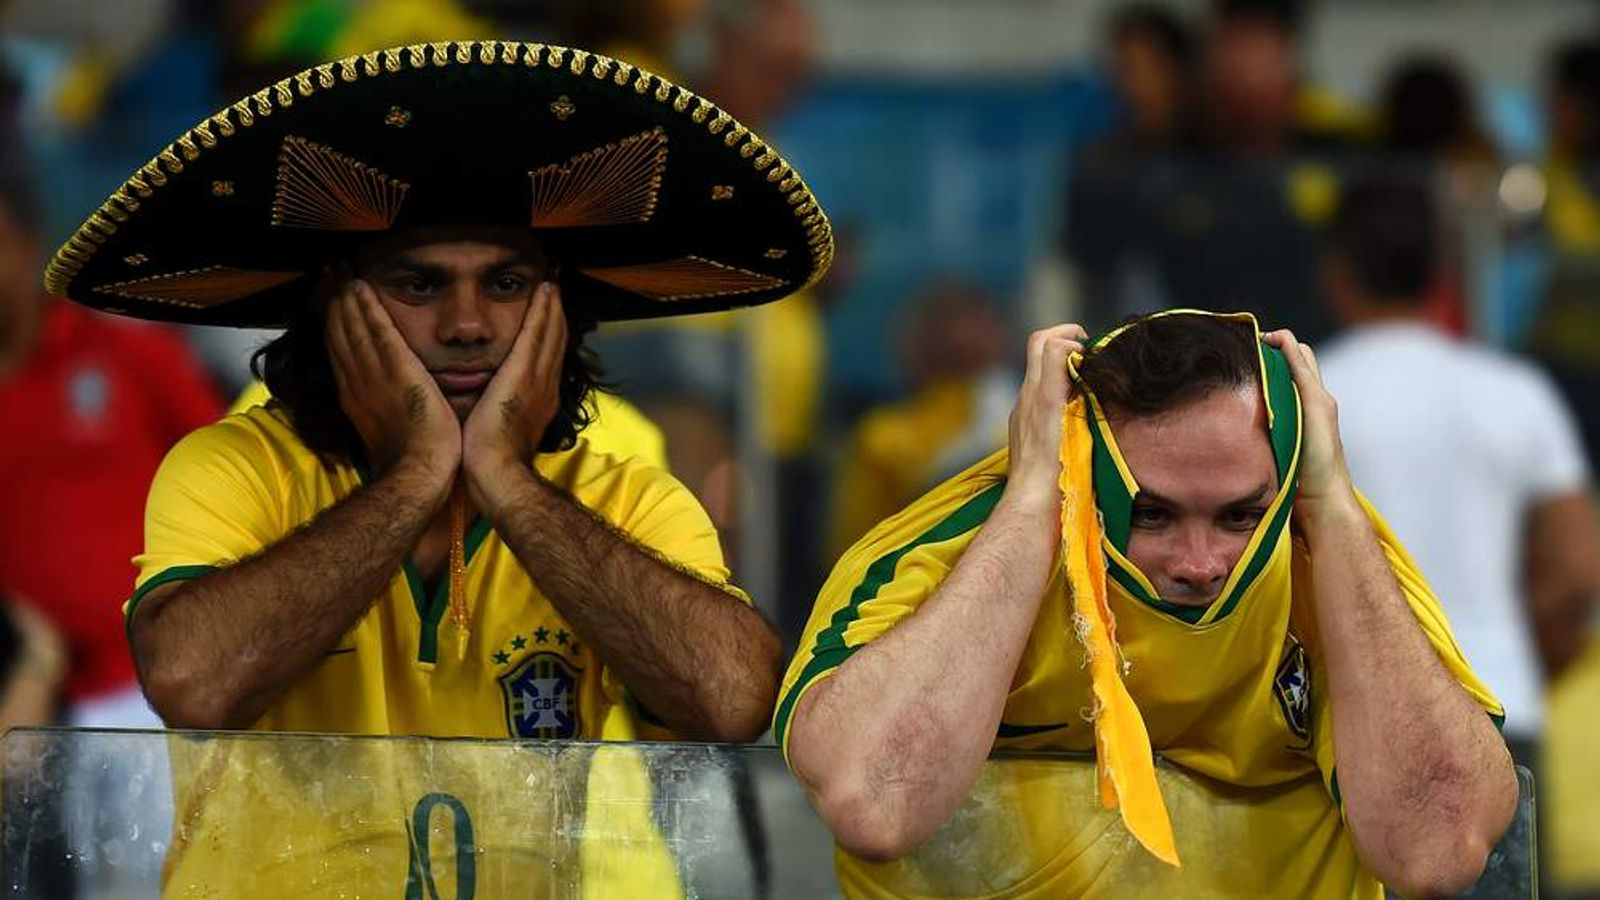 Brazil Fans Upset After Germany World Cup Defeat